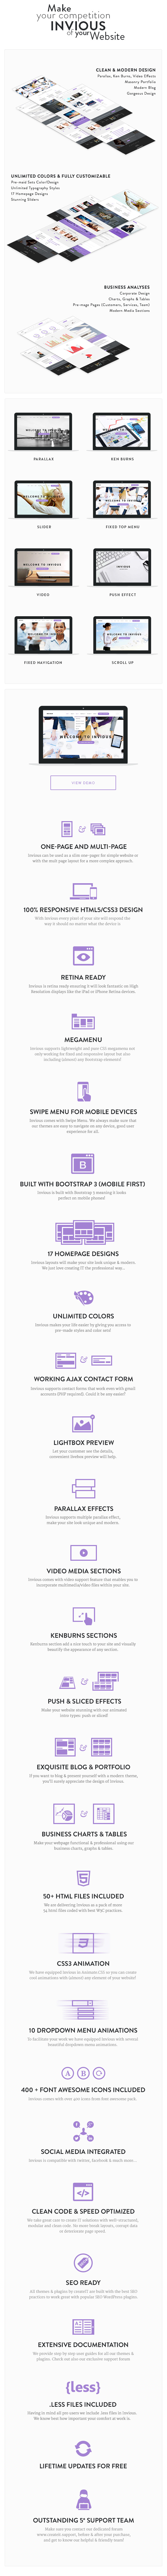 INVIOUS - Clean Responsive Corporate HTML Template - 8